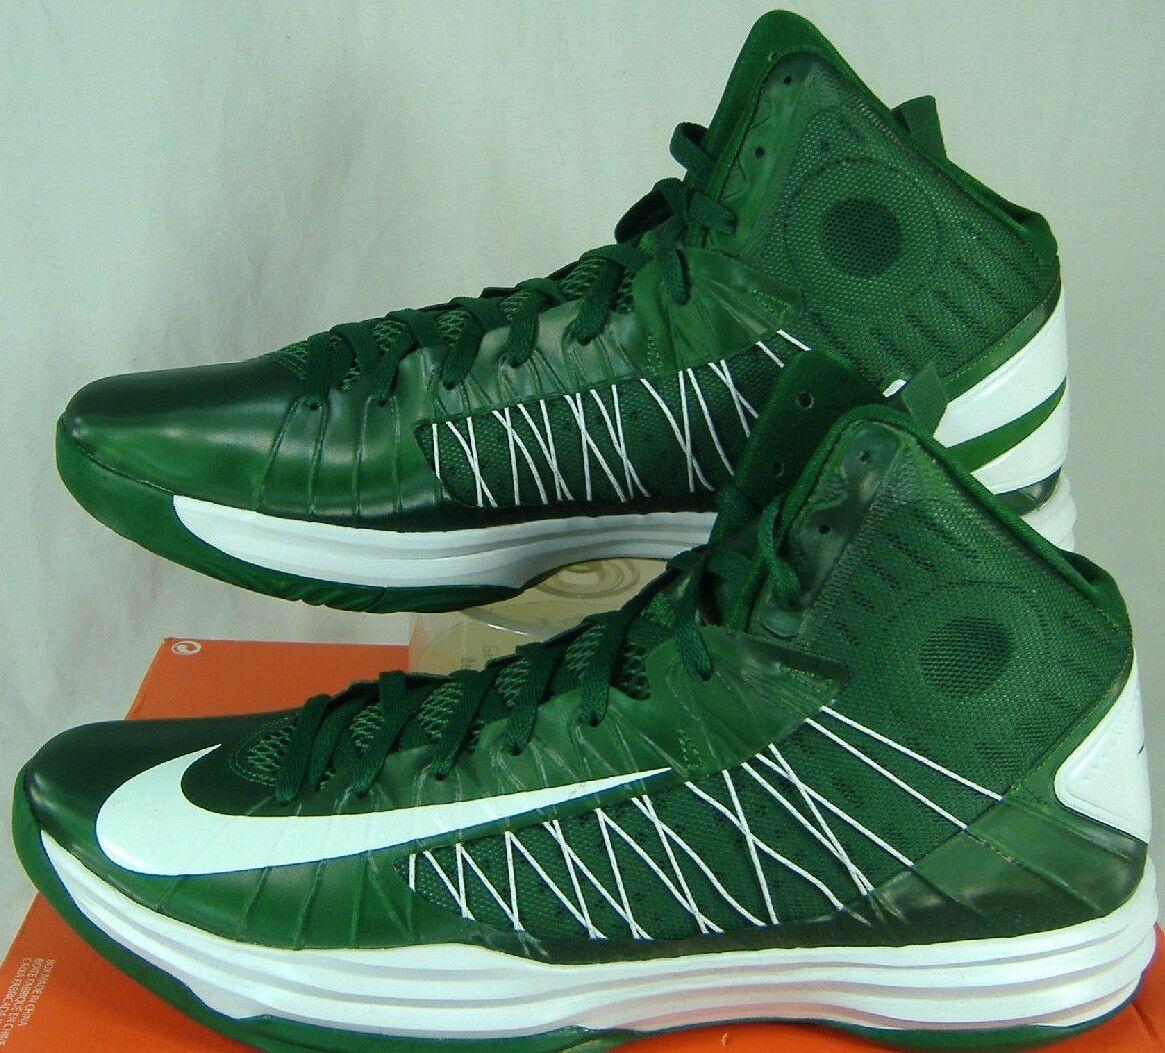 New Mens 18 NIKE Hyperdunk TB Green White High Top Shoes 140 524882-300